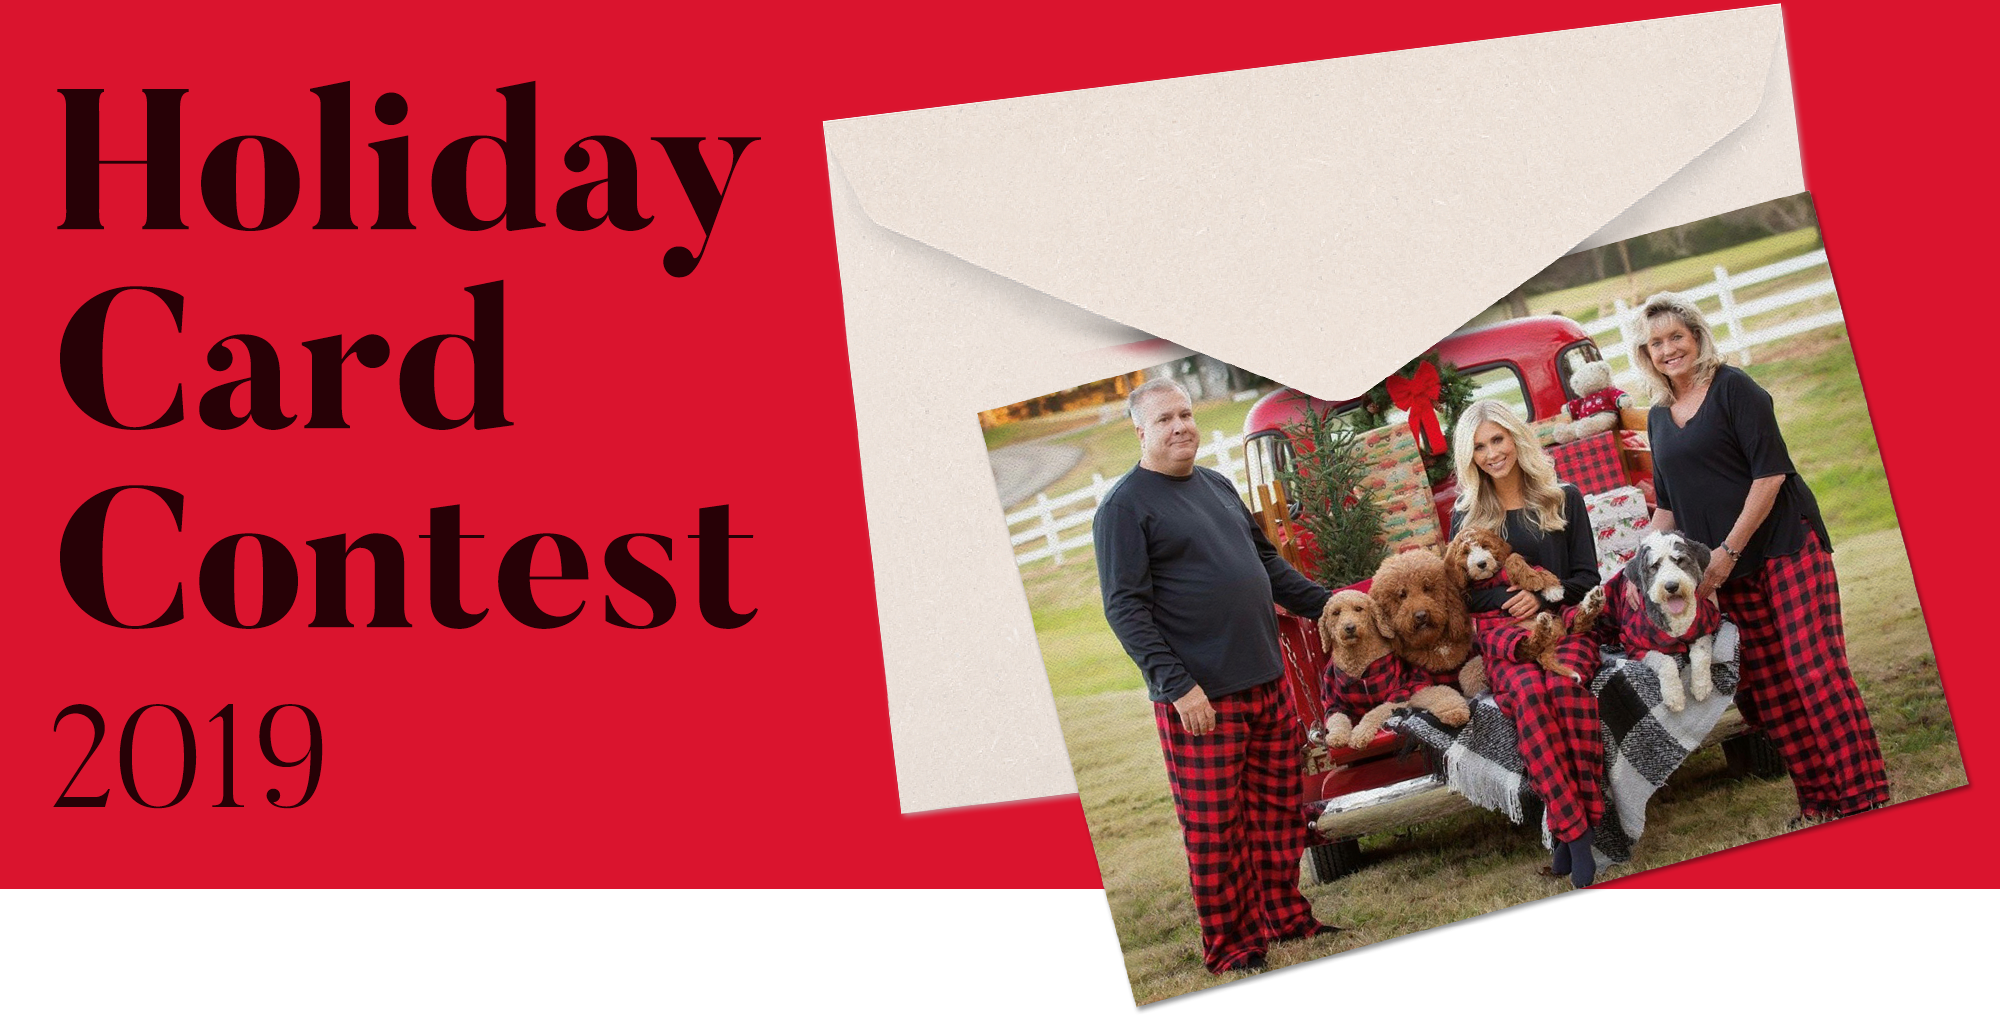 fabdog's annual holiday card contest 2019